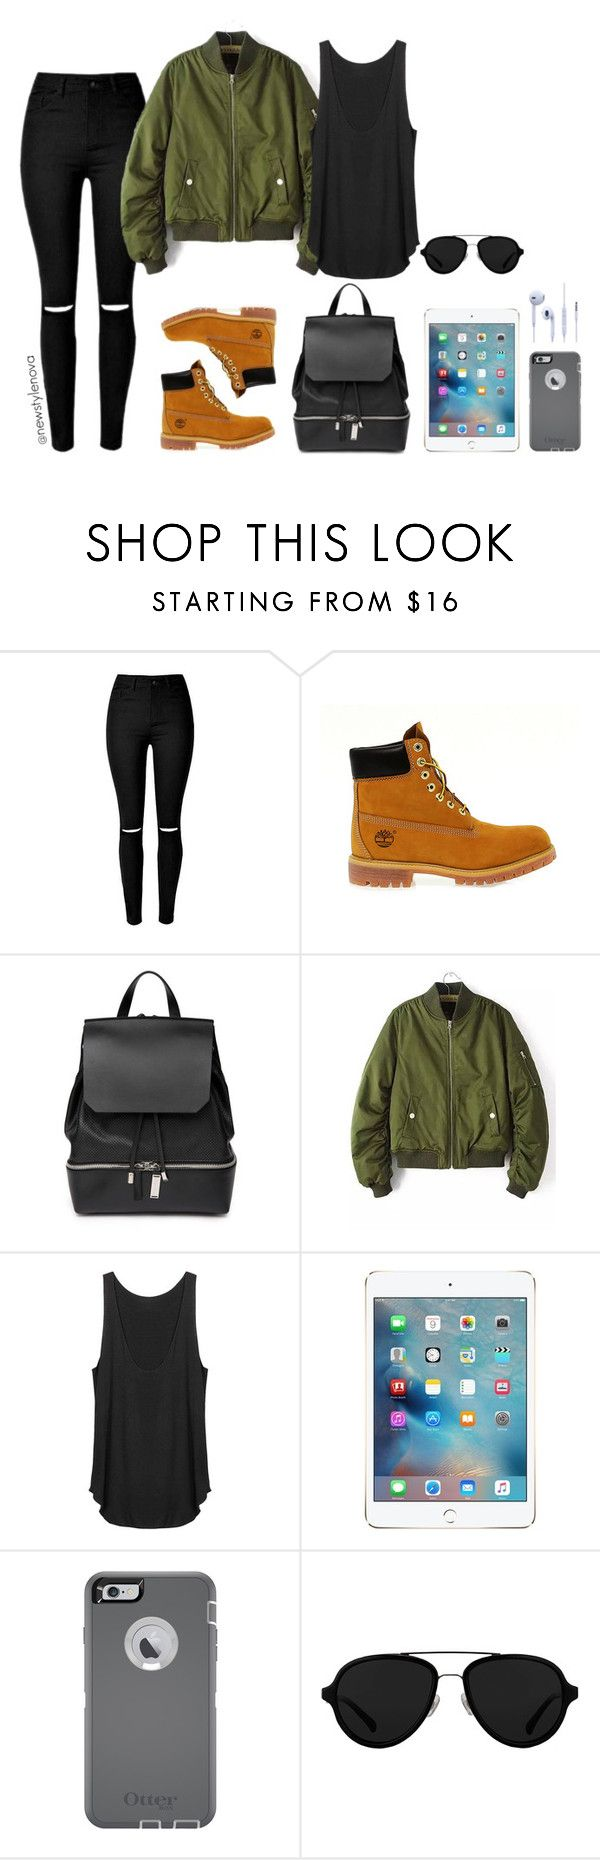 """Untitled #34"" by treno ❤ liked on Polyvore featuring мода, Timberland, COSTUME NATIONAL, OtterBox, 3.1 Phillip Lim, women's clothing, women, female, woman и misses"